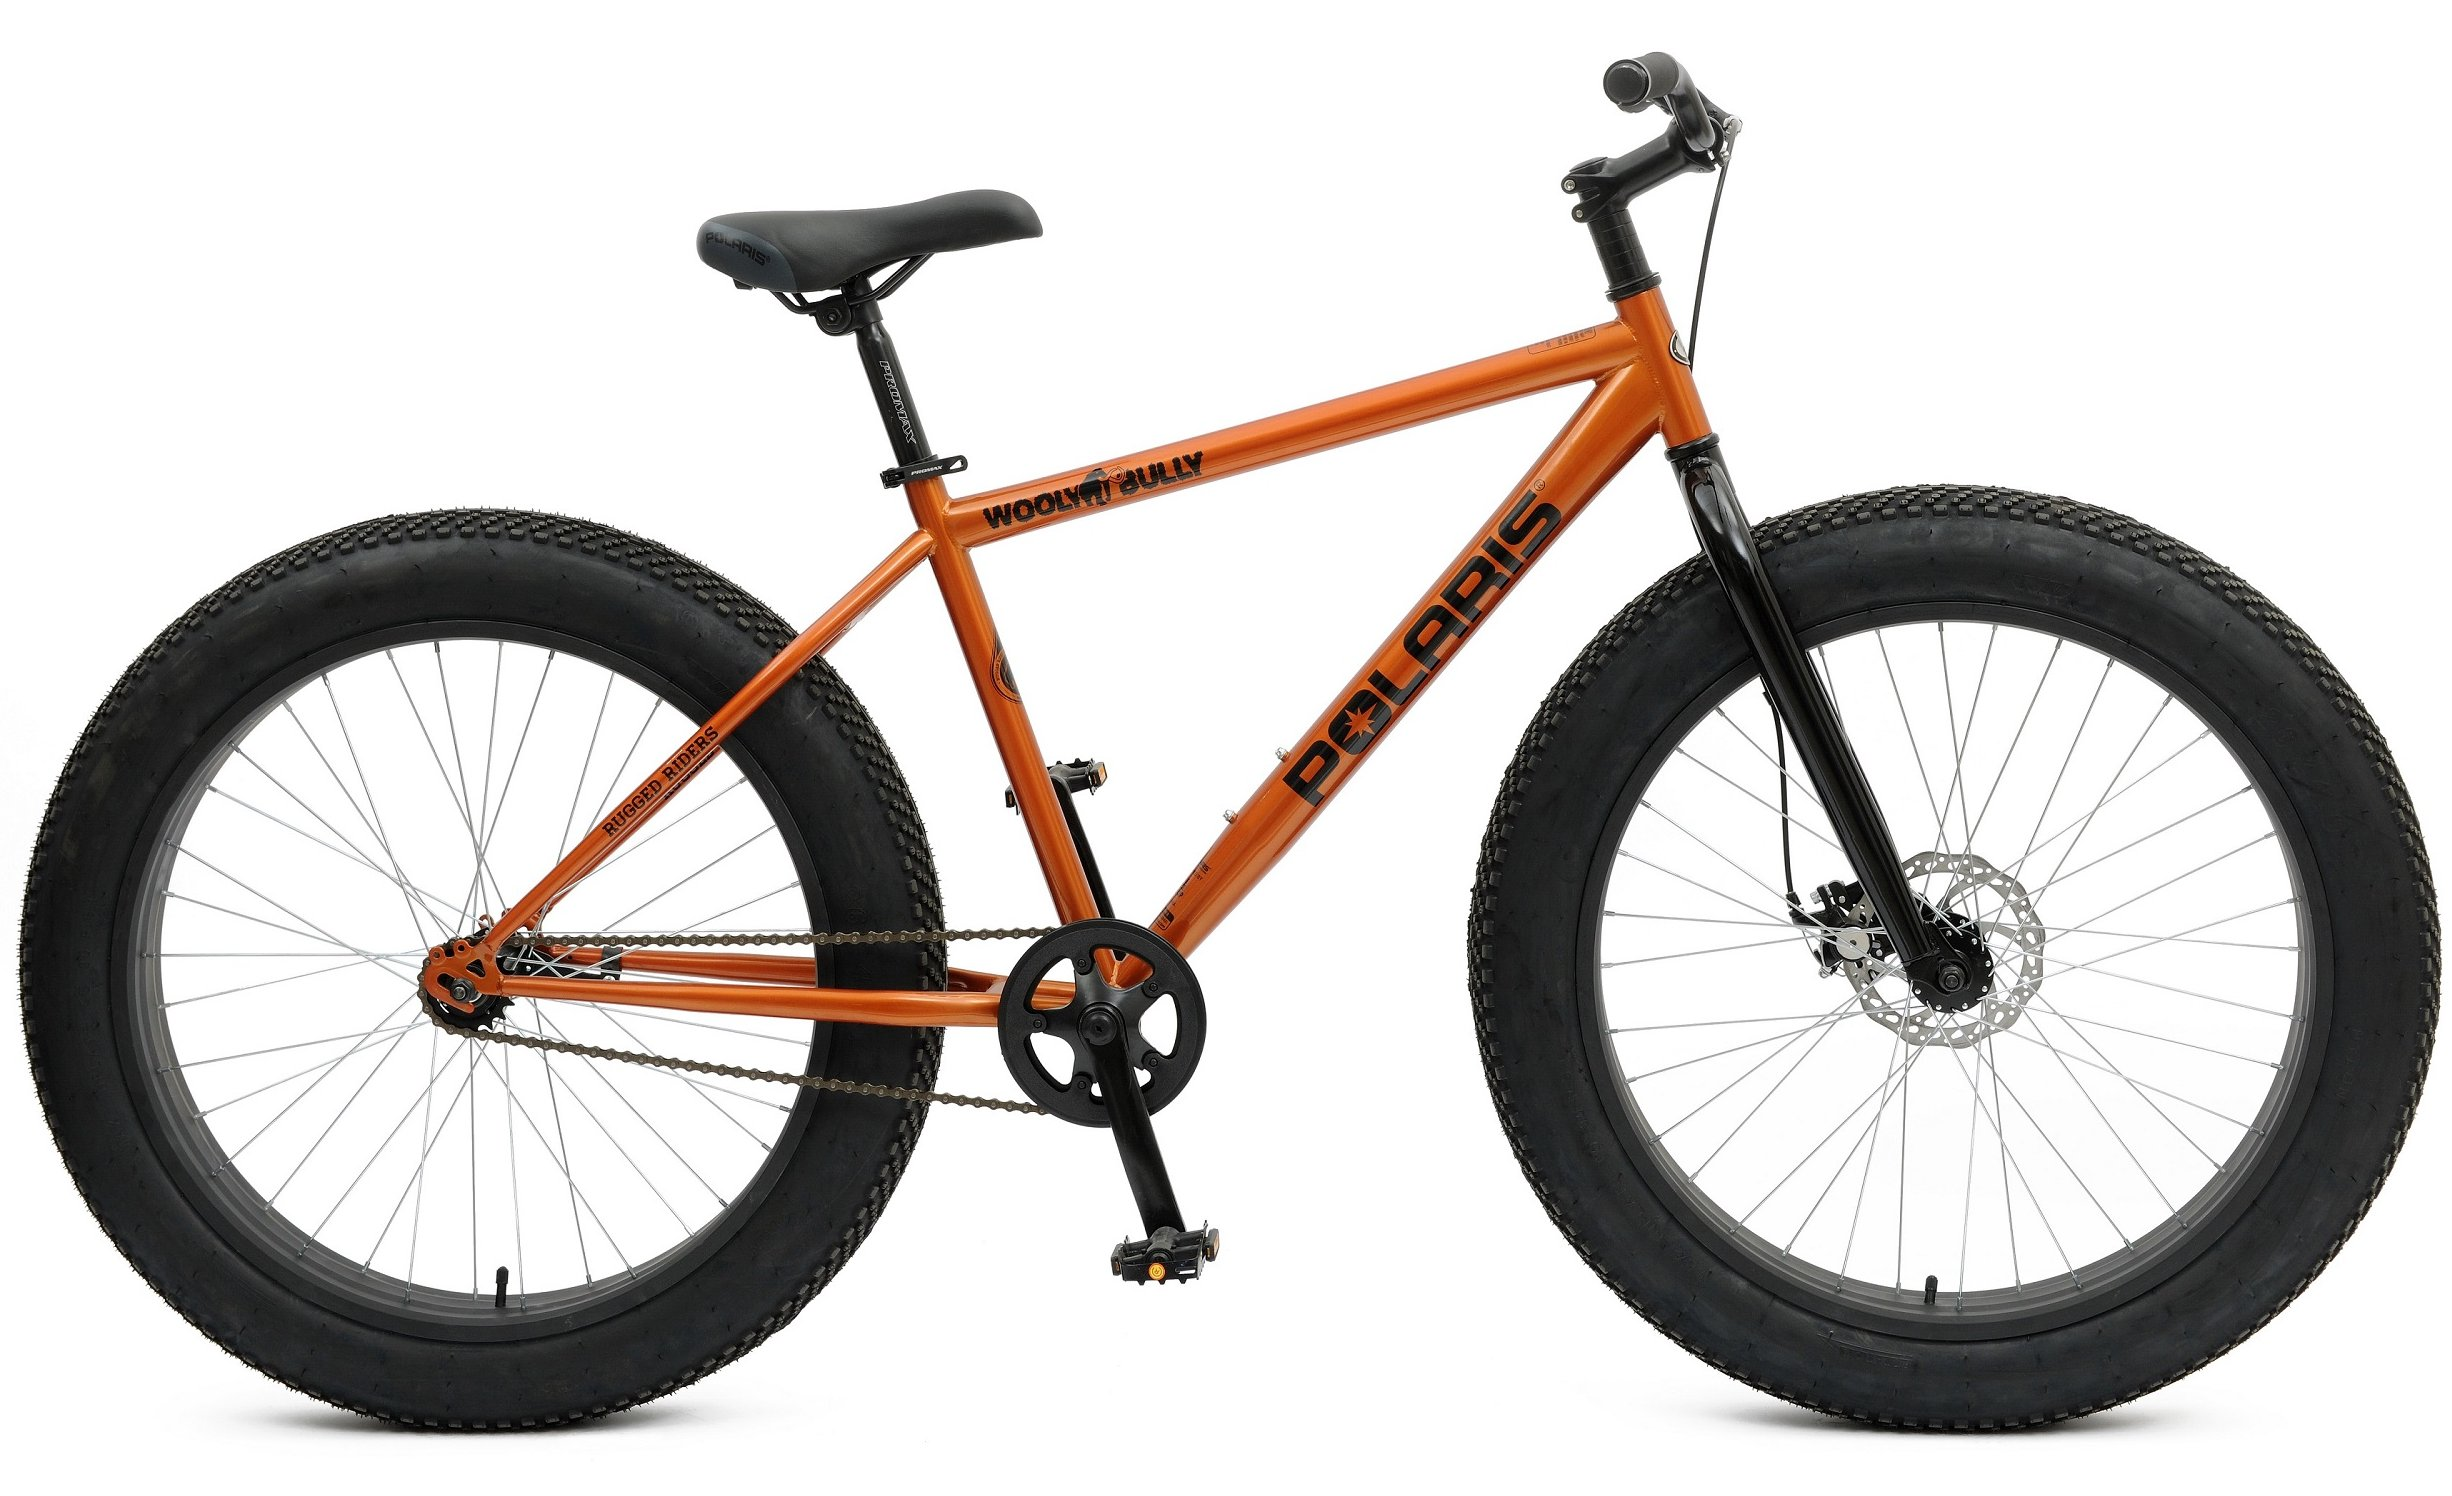 Polaris Wooly Bully Fat Tire Bike